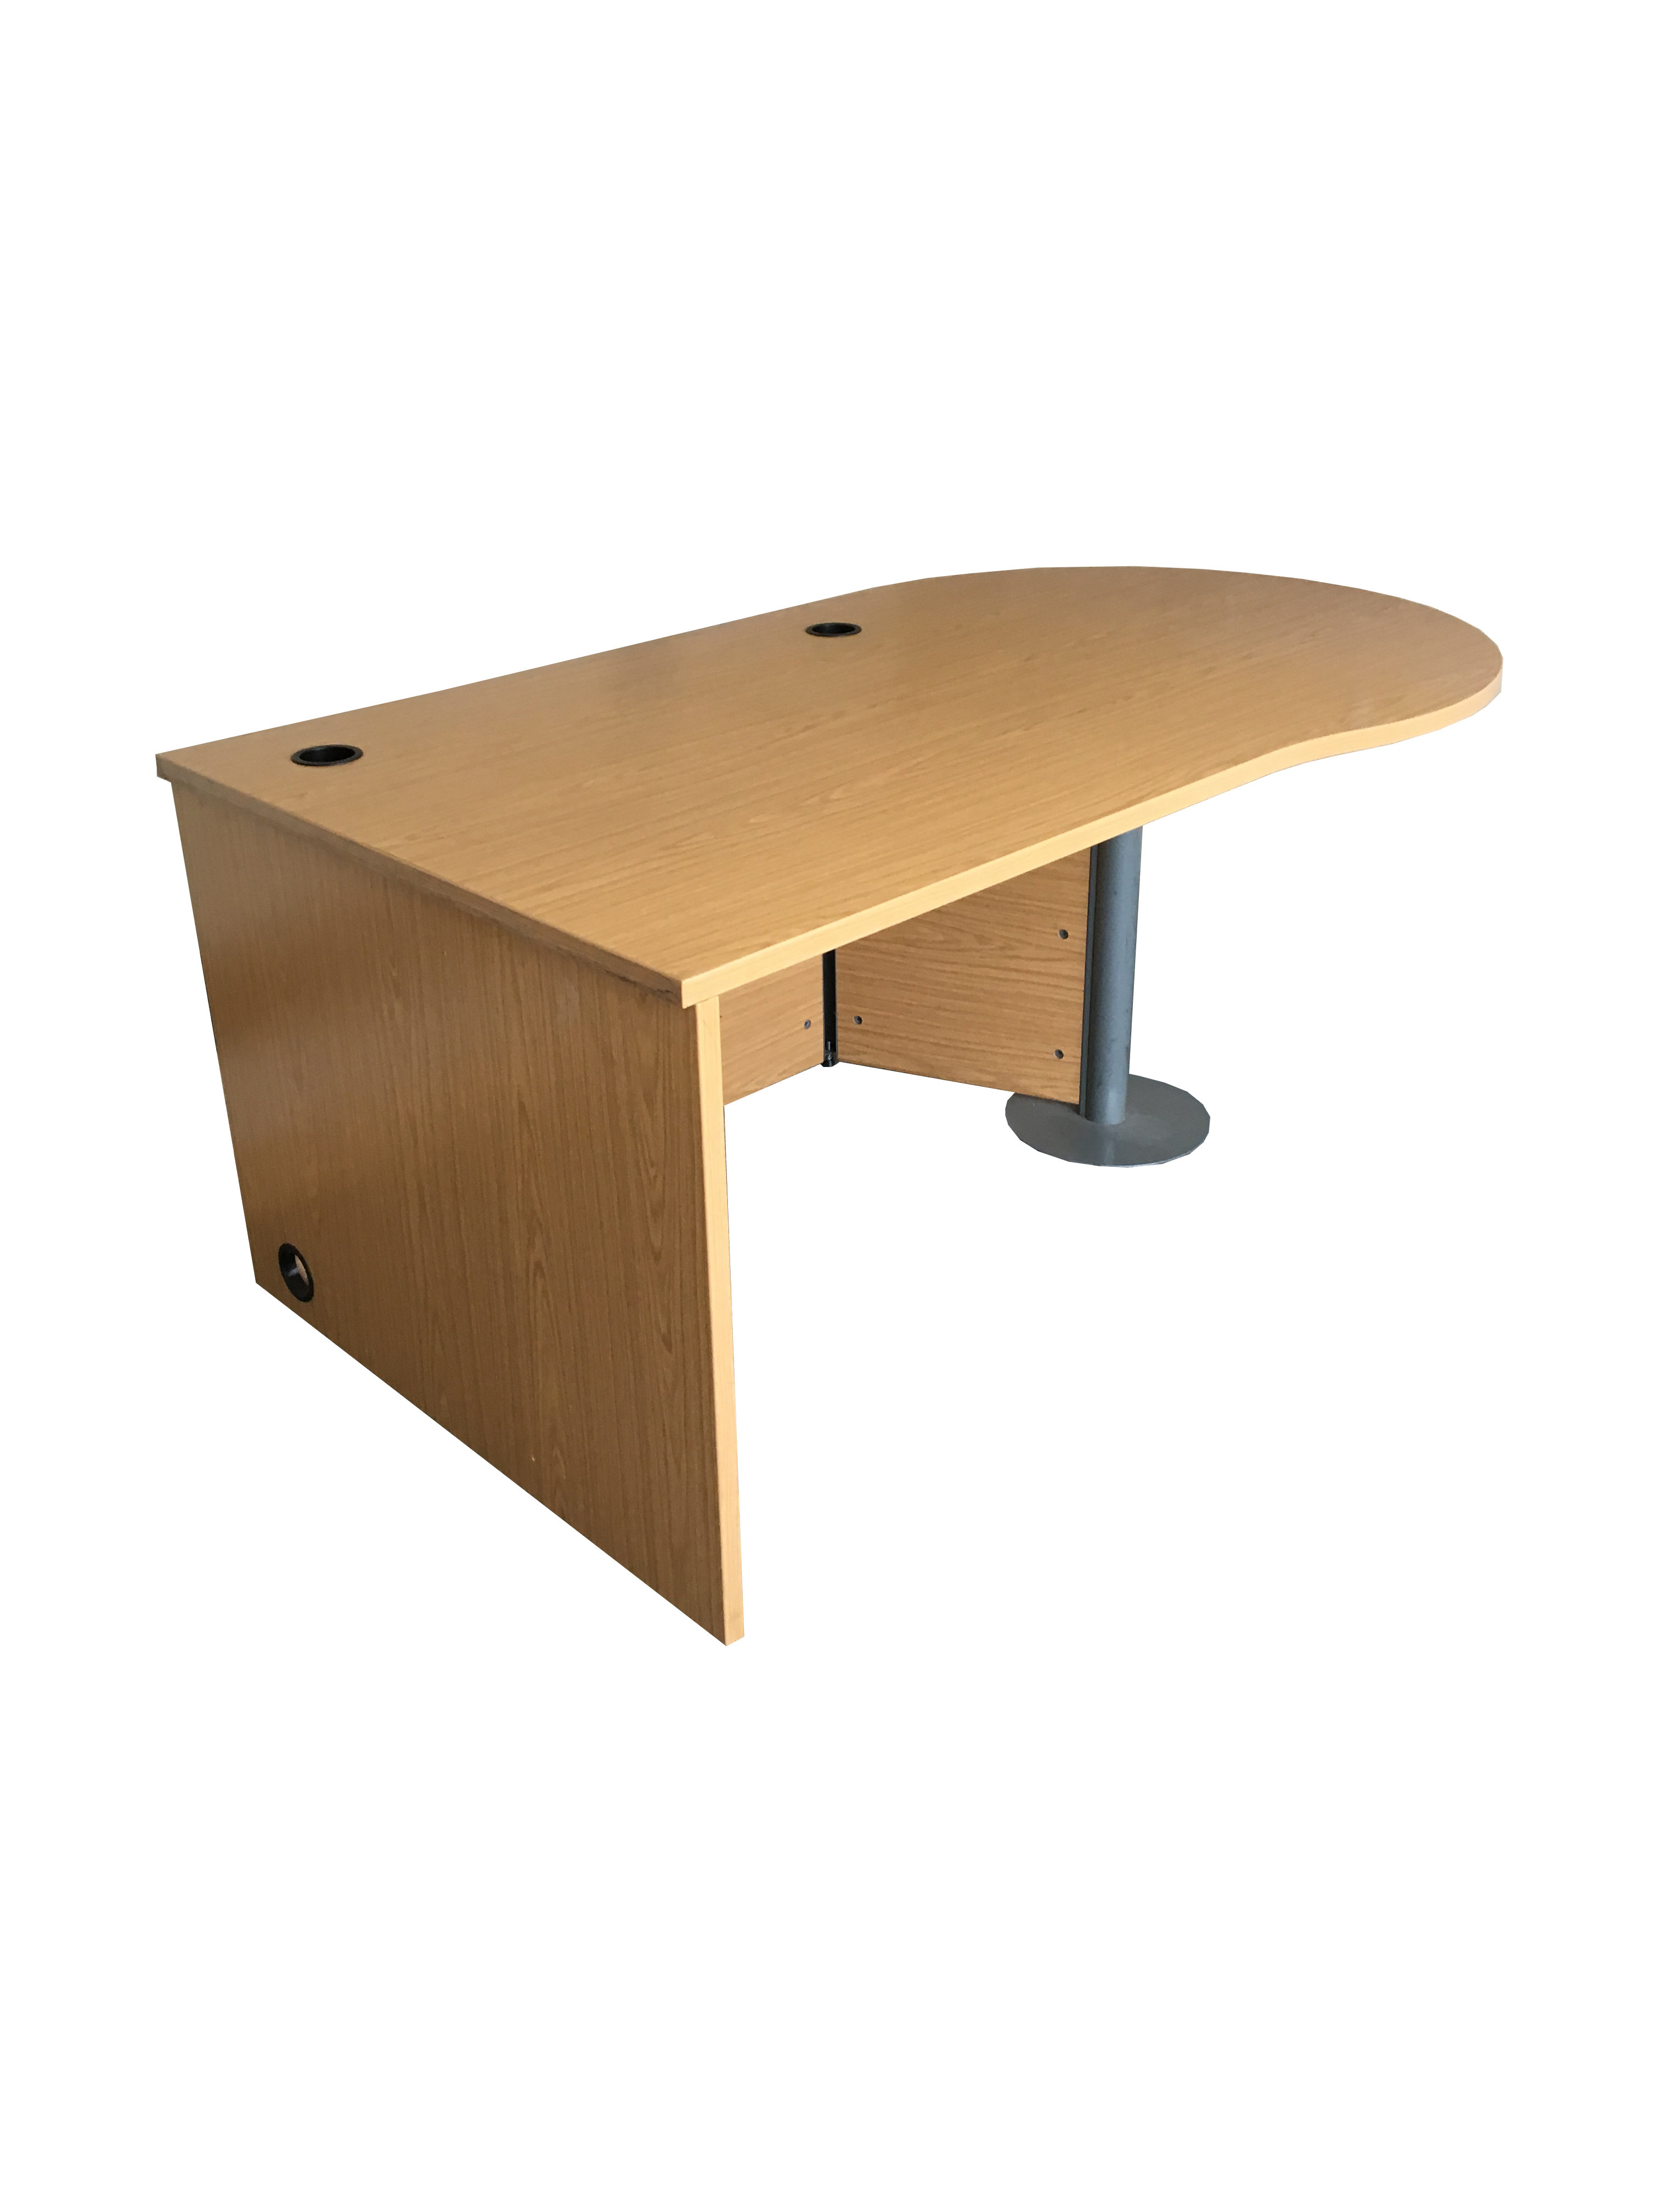 Large Office Desk With Spacious Round End In Beech Chrome Leg Stand Uofd